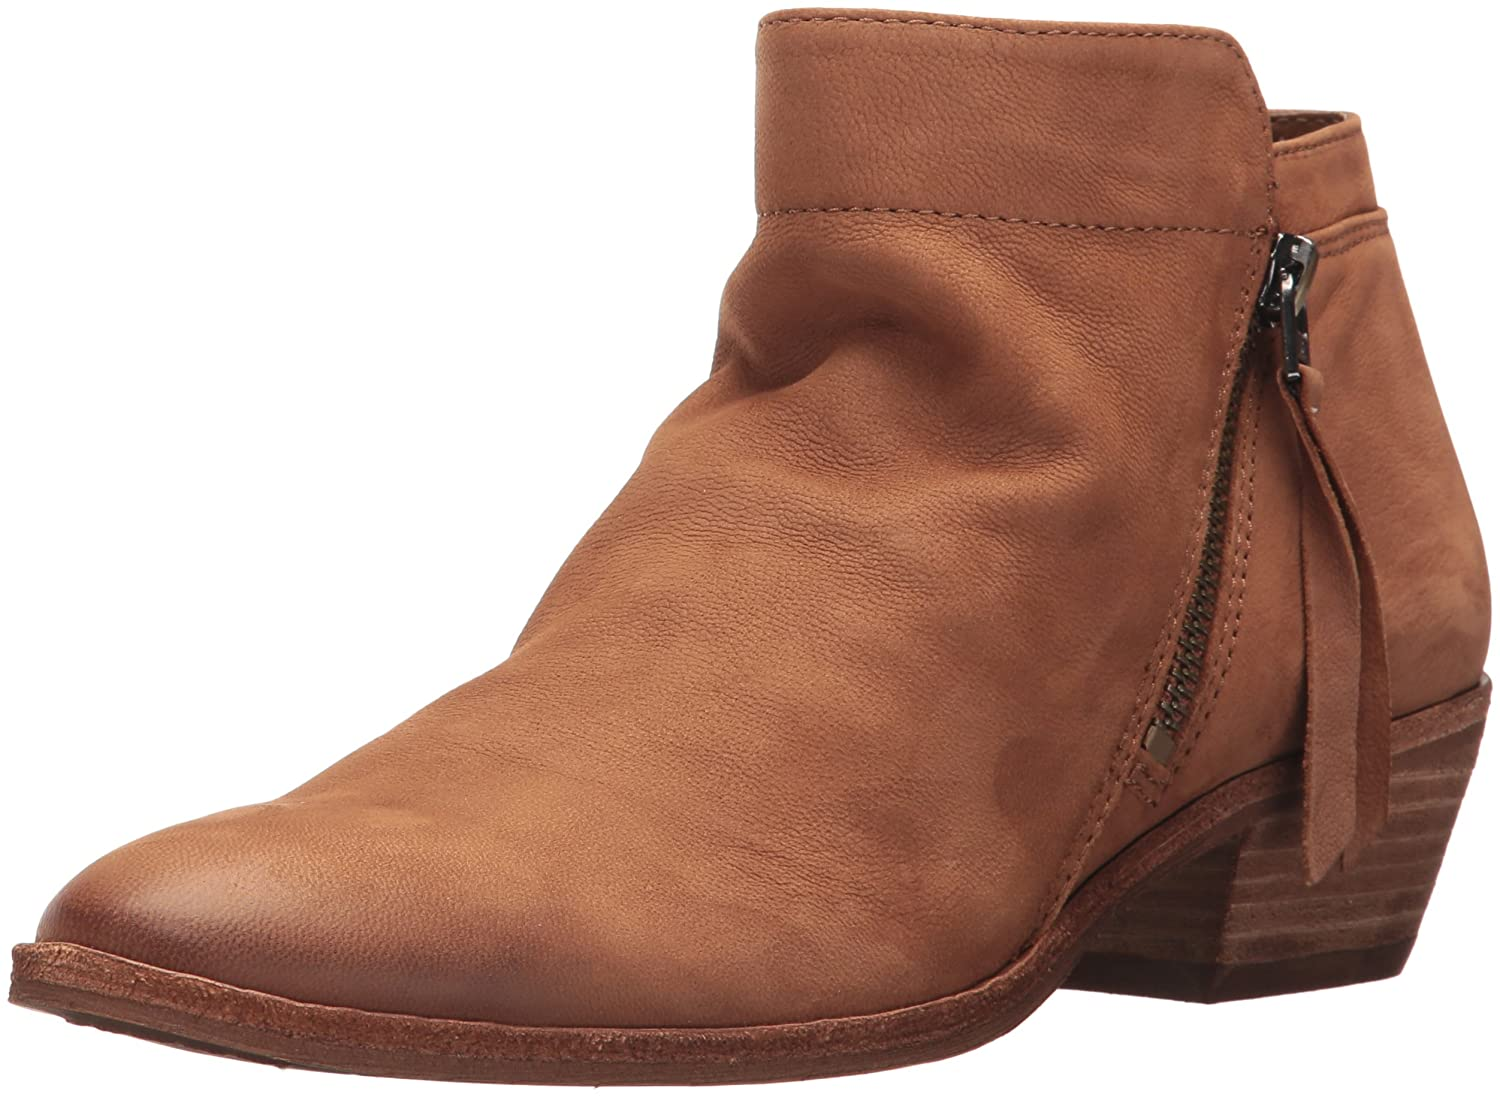 Sam Edelman Women's Packer Ankle Boot B06XC8BB6L 11 B(M) US|Deep Saddle Leather